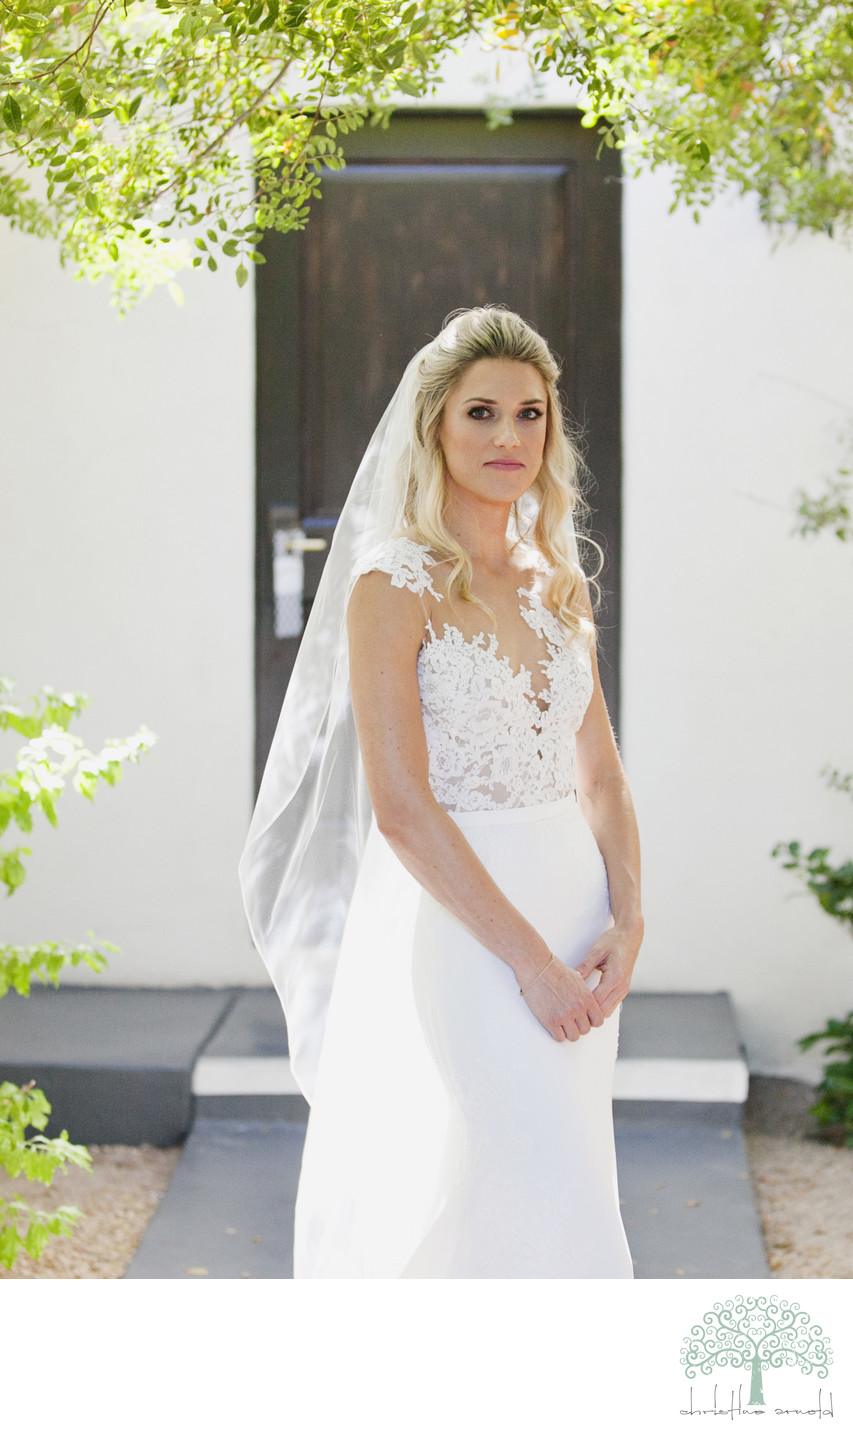 Best bridal photographer Palm Springs California